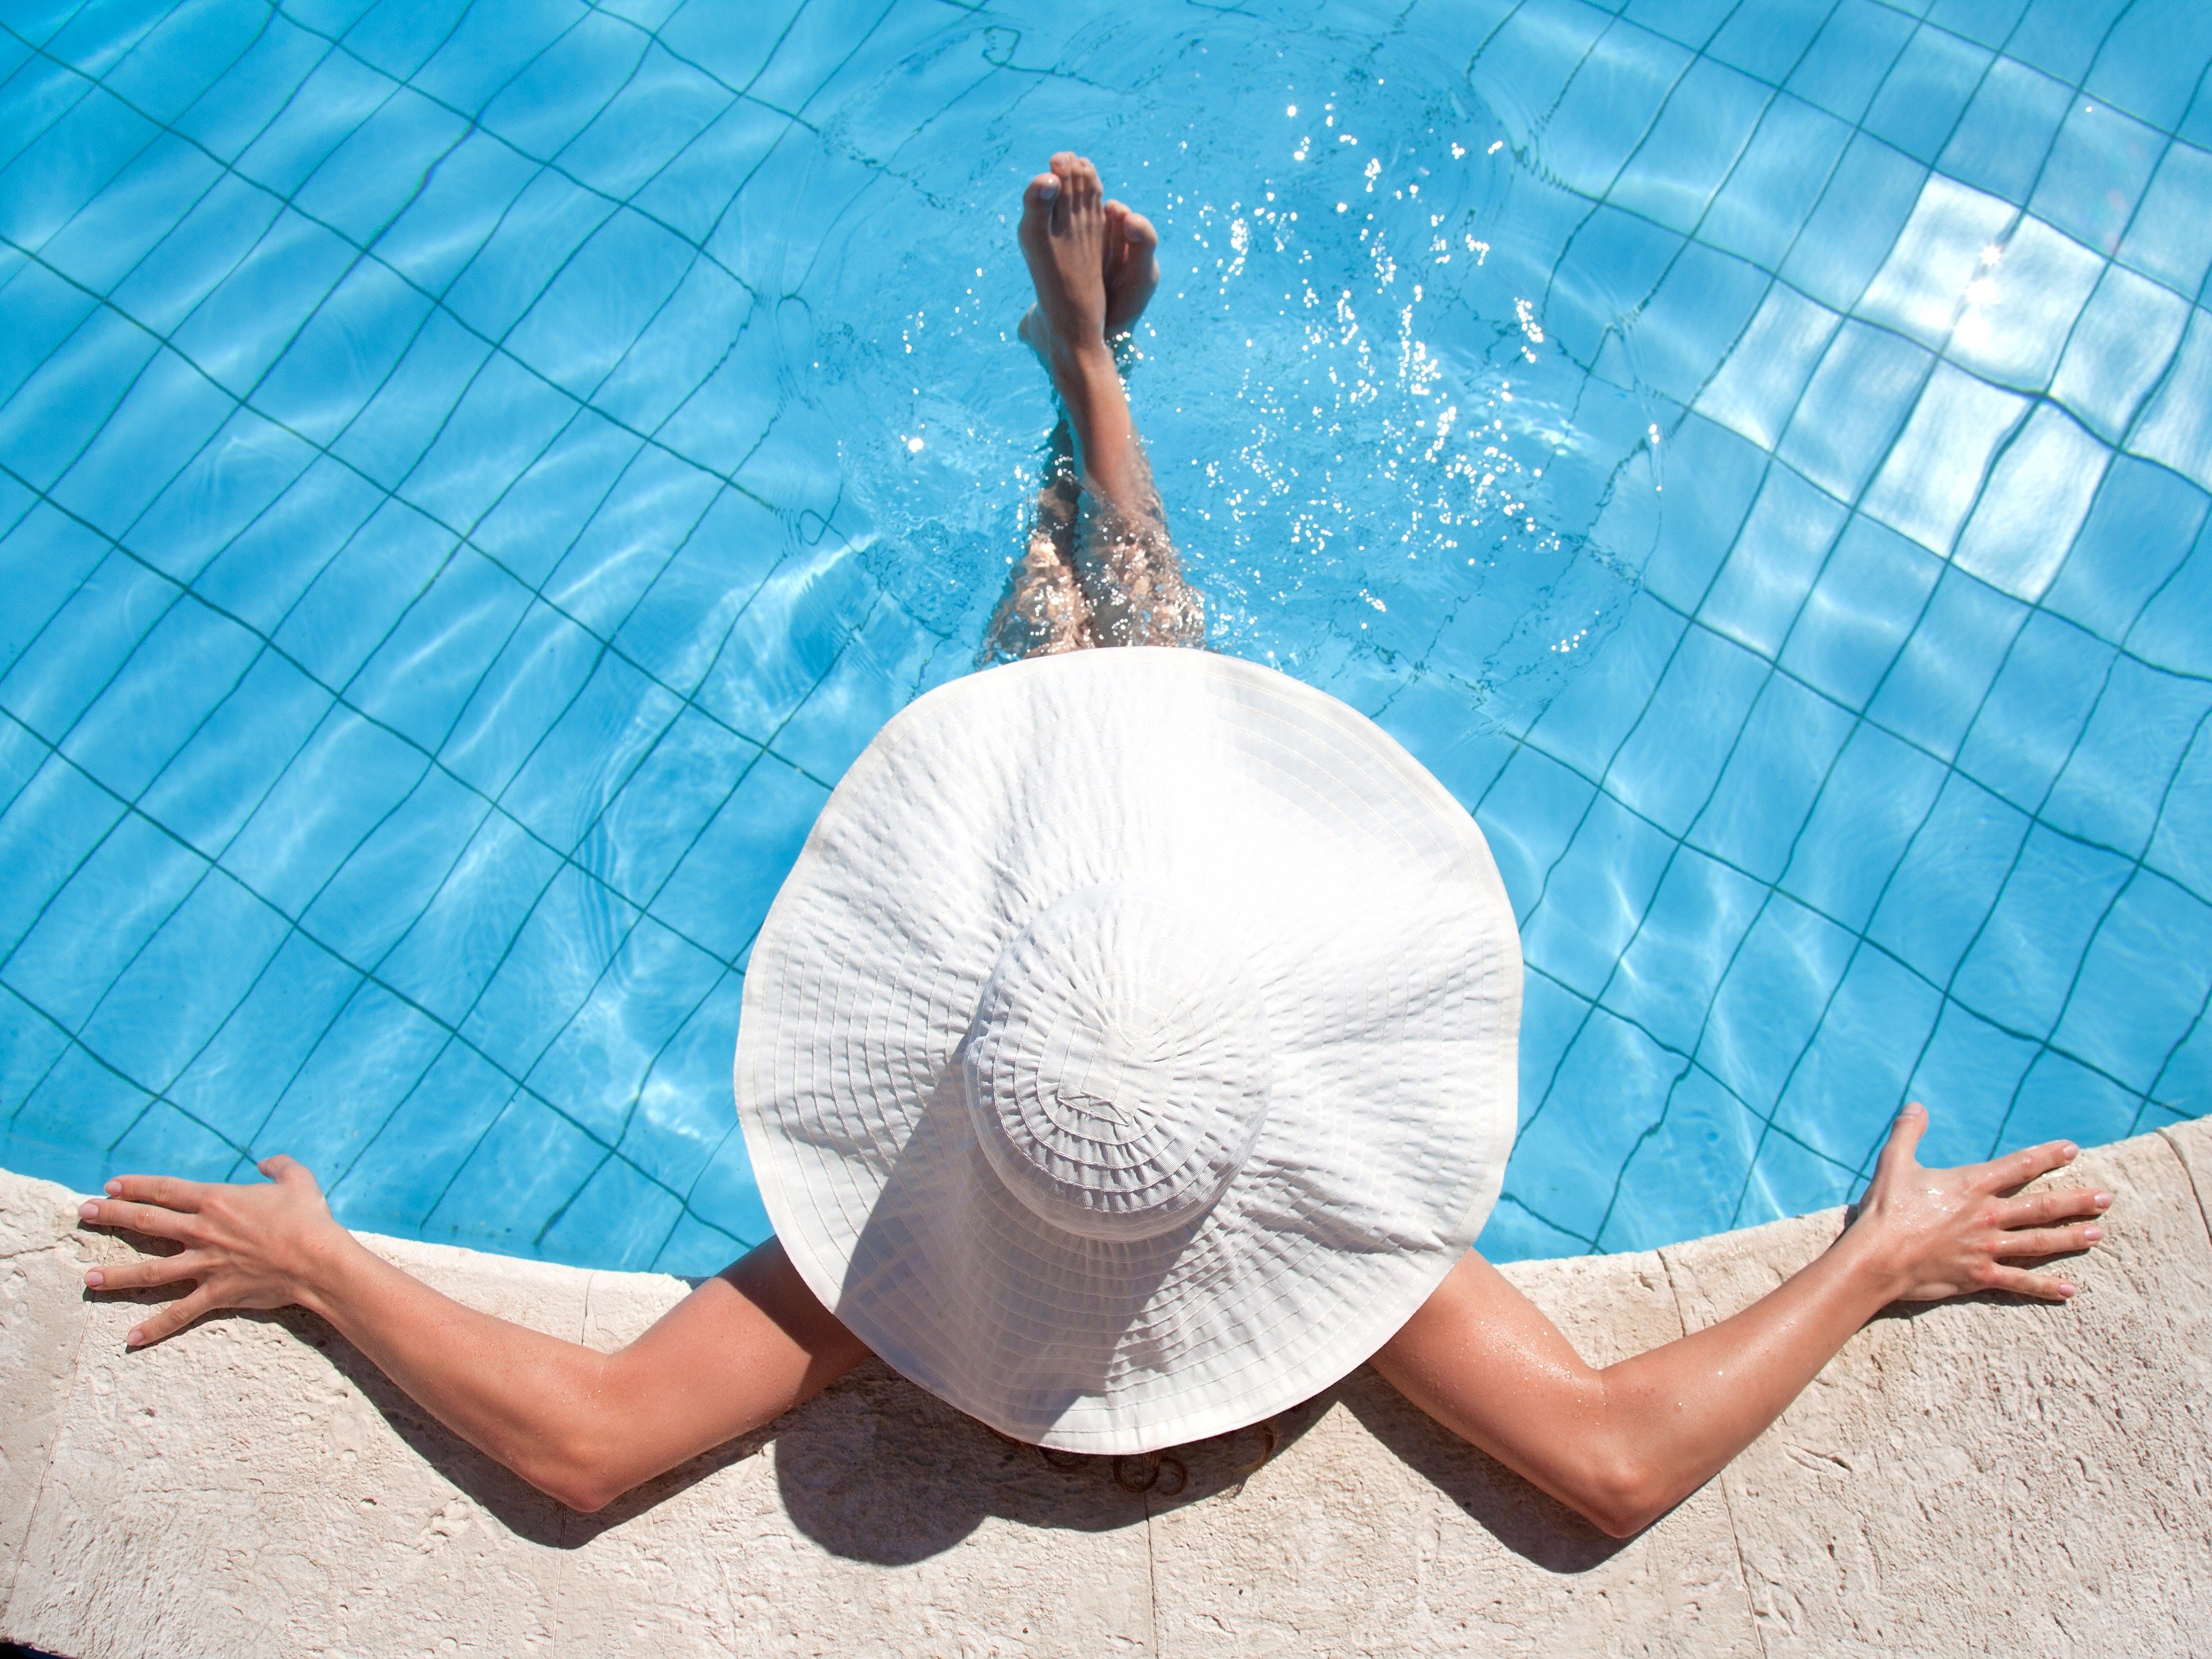 3. Use Styrofoam to Make a Floating Tray for the Pool